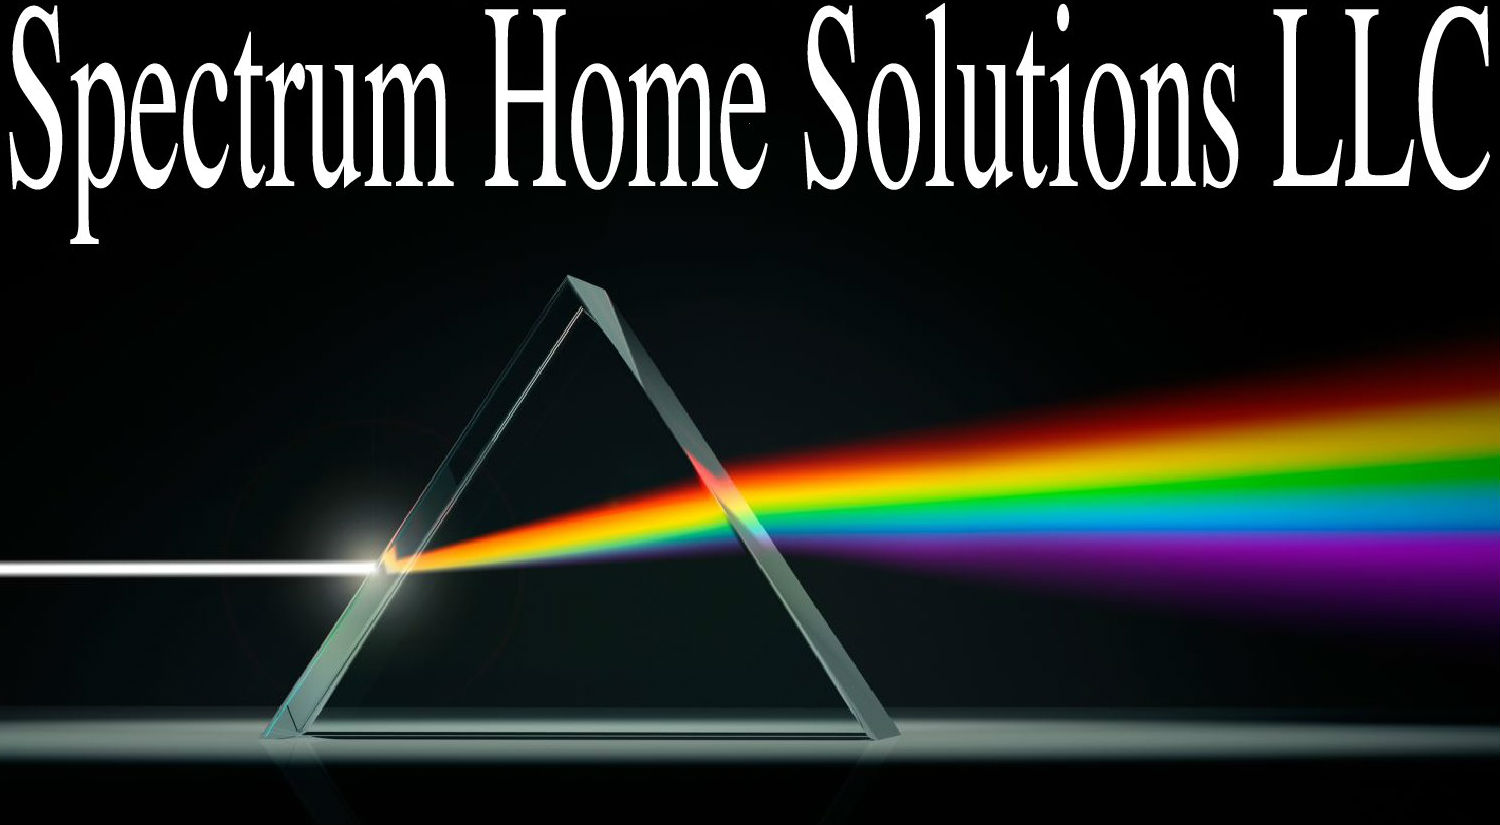 Spectrum Home Solutions, LLC